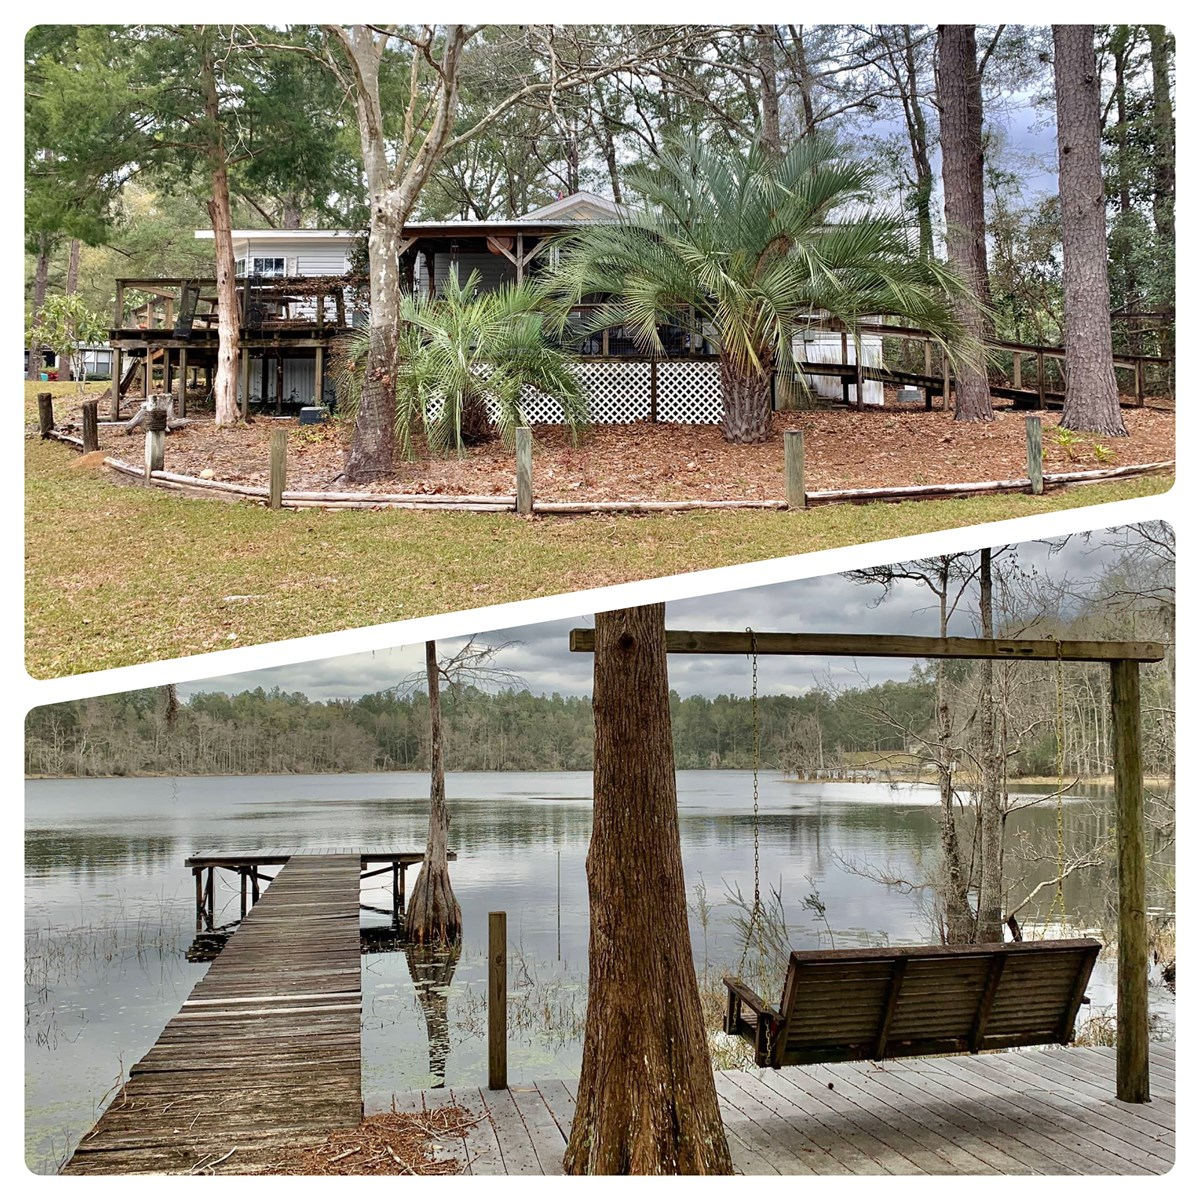 Fish Camp - New Hope Florida - Washington County Vernon FL